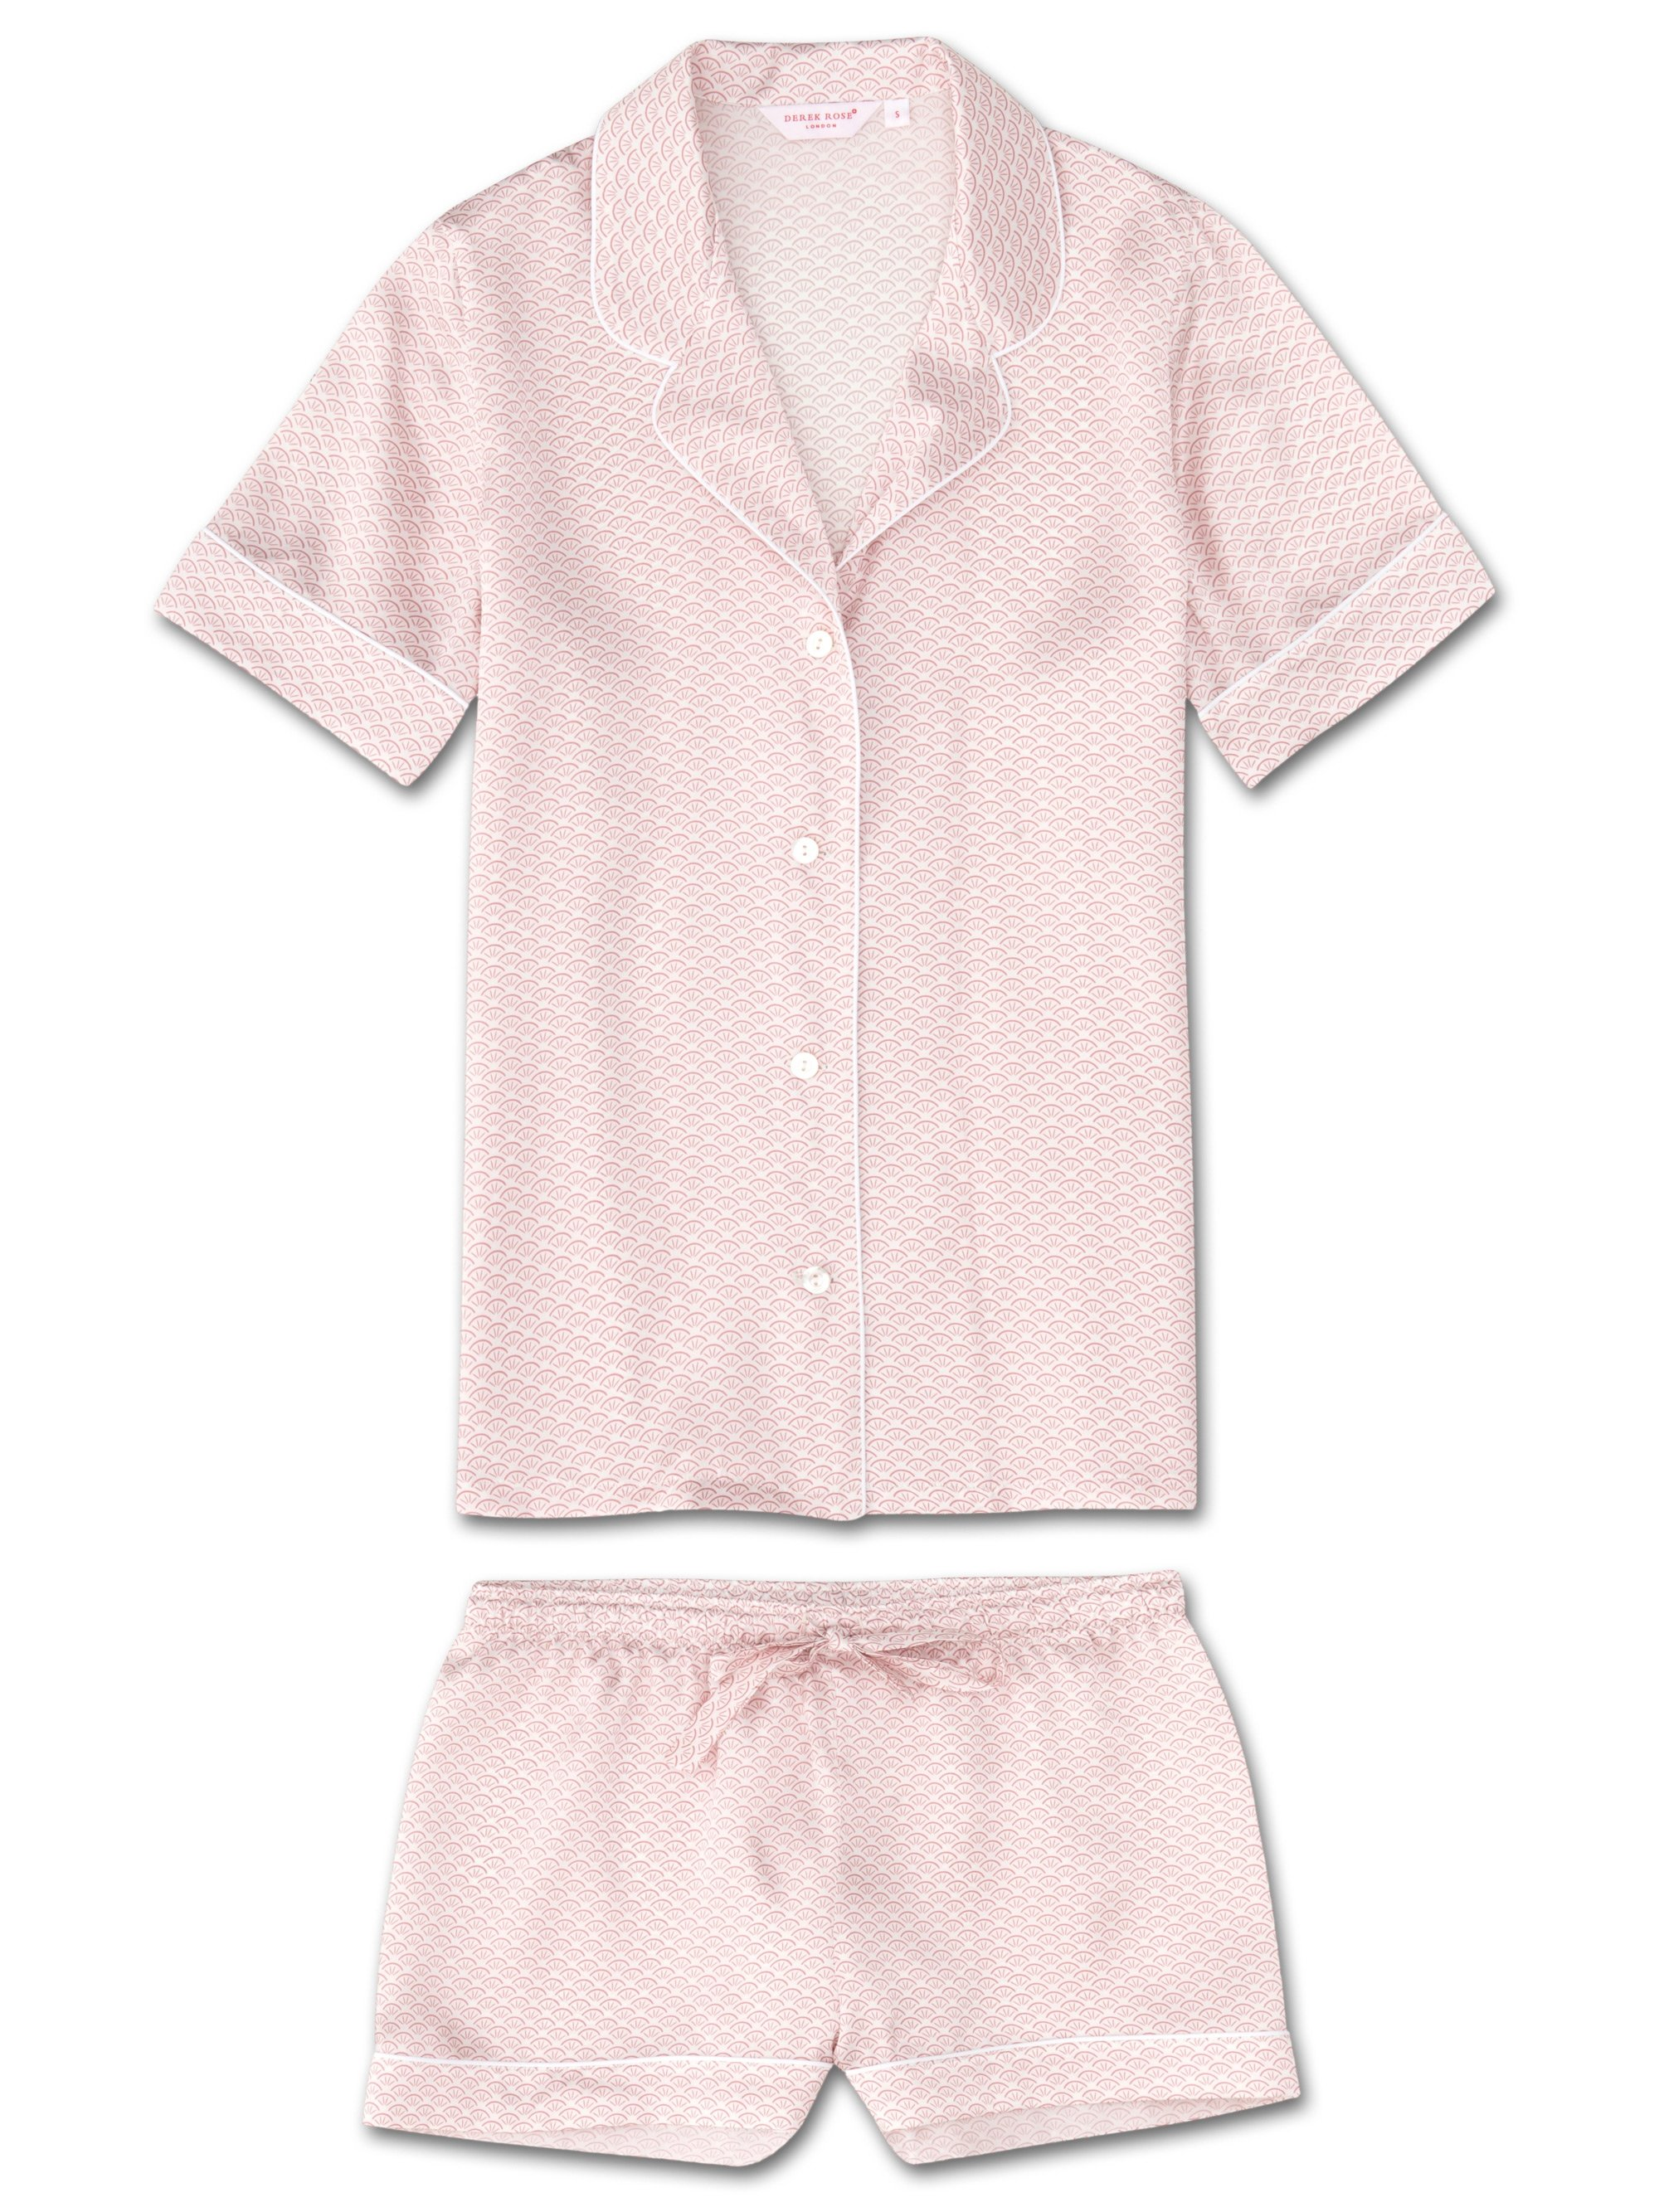 Women's Shortie Pyjamas Brindisi 26 Pure Silk Satin White